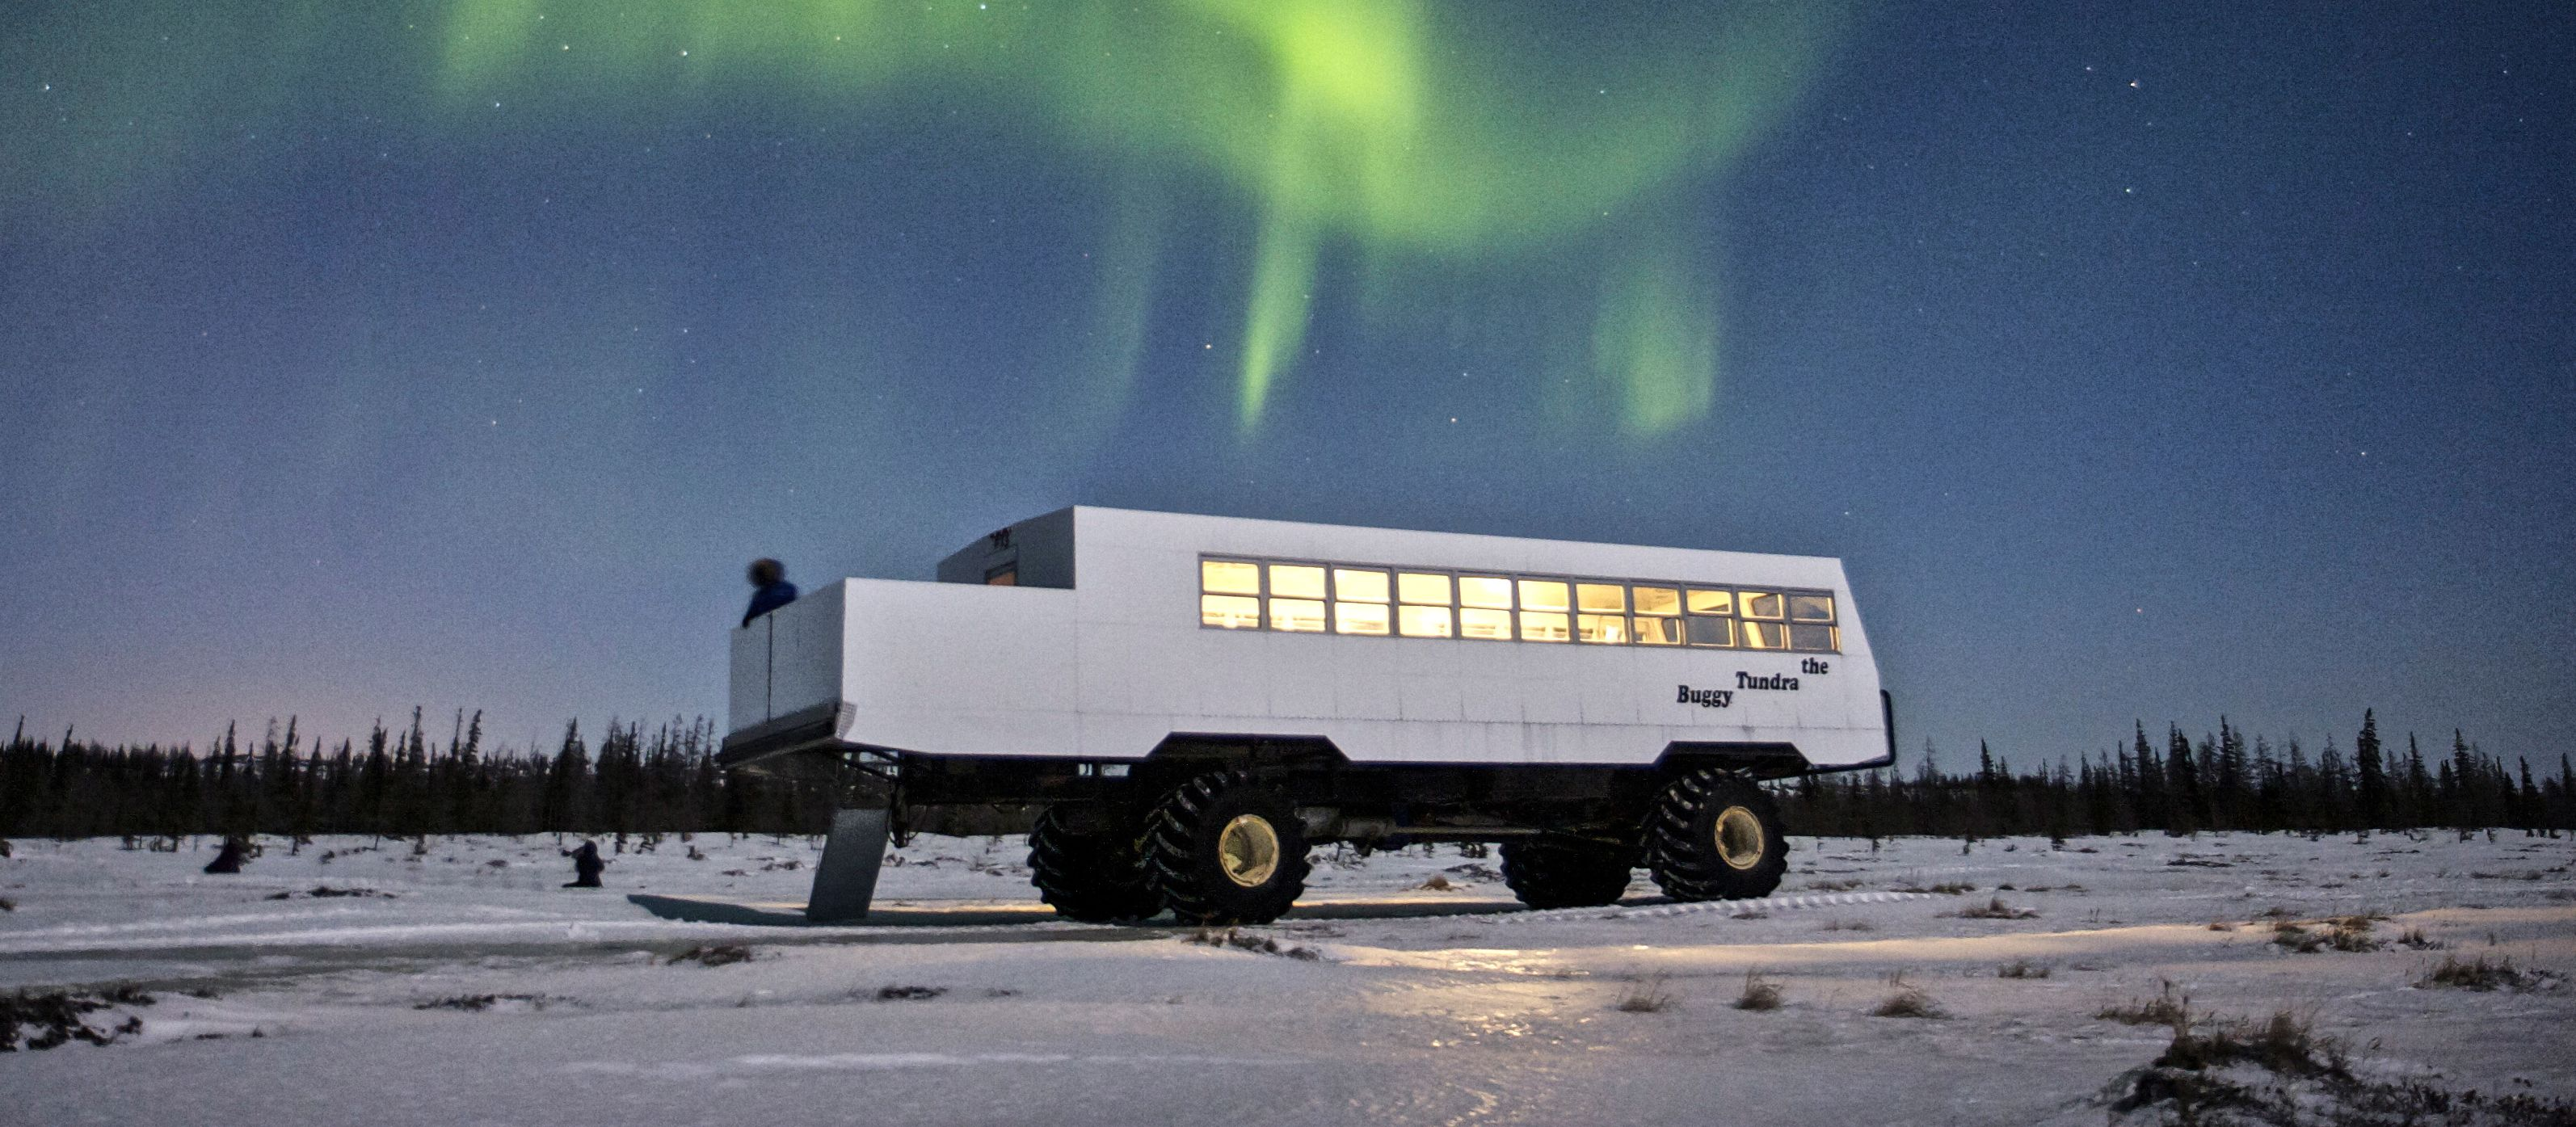 Tundra Buggy Northern Lights Tour von Frontiers North Adventures